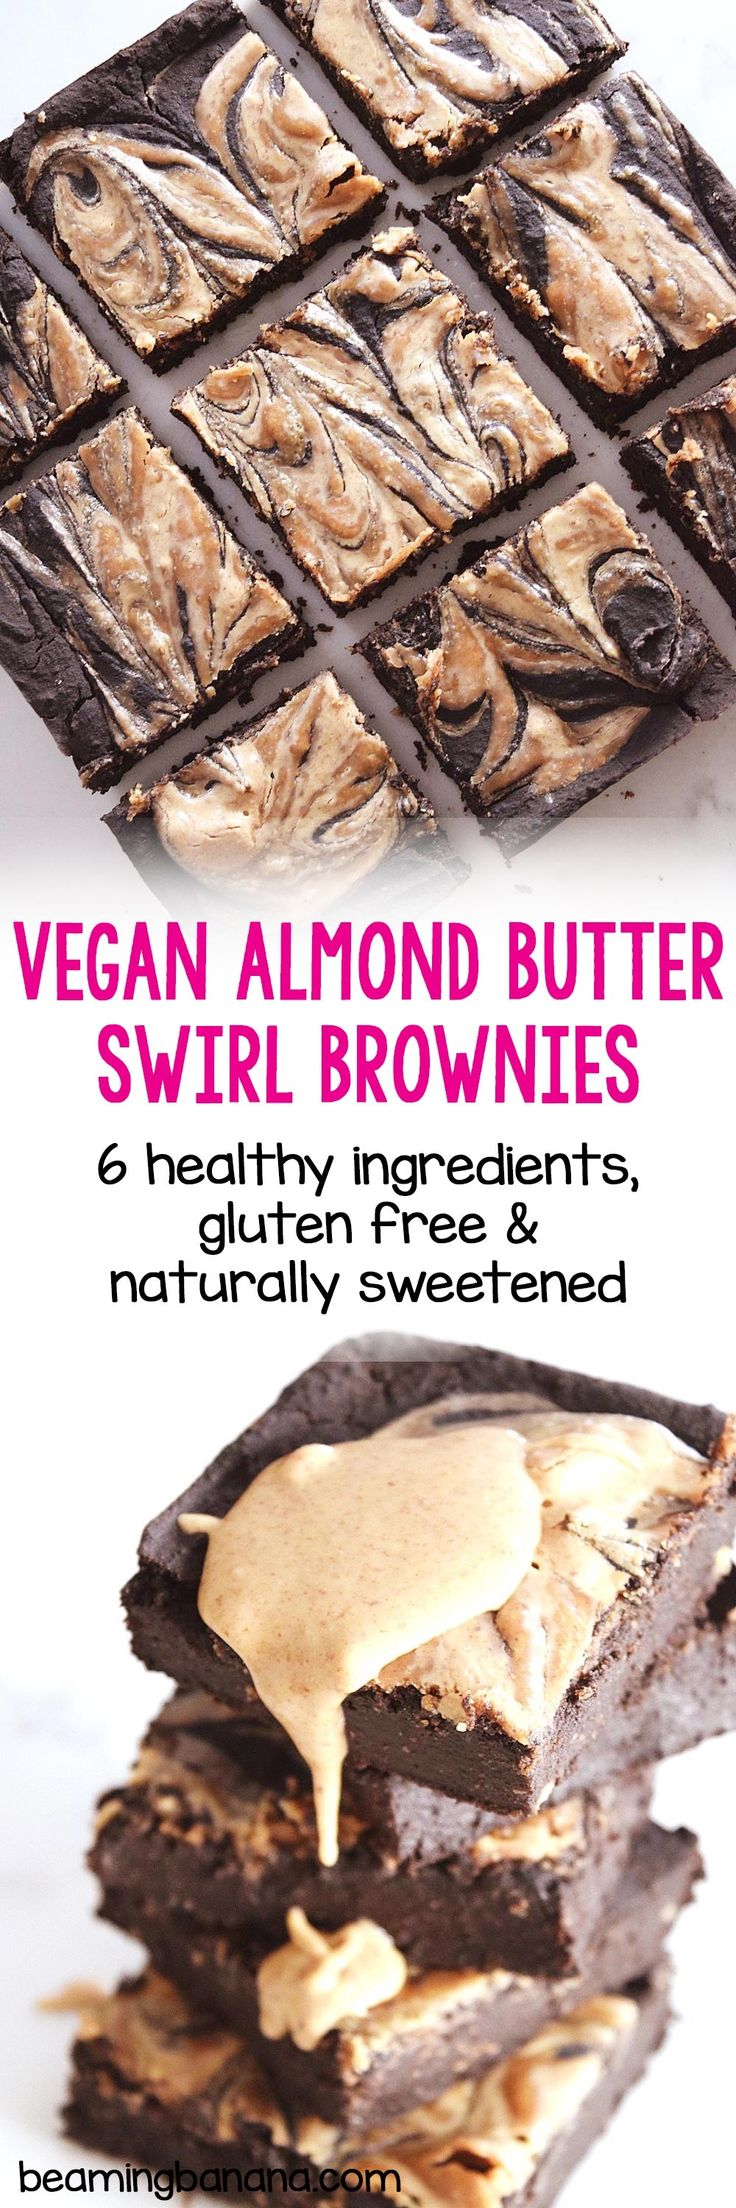 Rich, fudgy brownies with a swirl of almond butter. These vegan almond butter swirl brownies are made with just 7 healthy ingredients and you'd never know they're gluten free and naturally sweetened! My favorite brownies EVER.